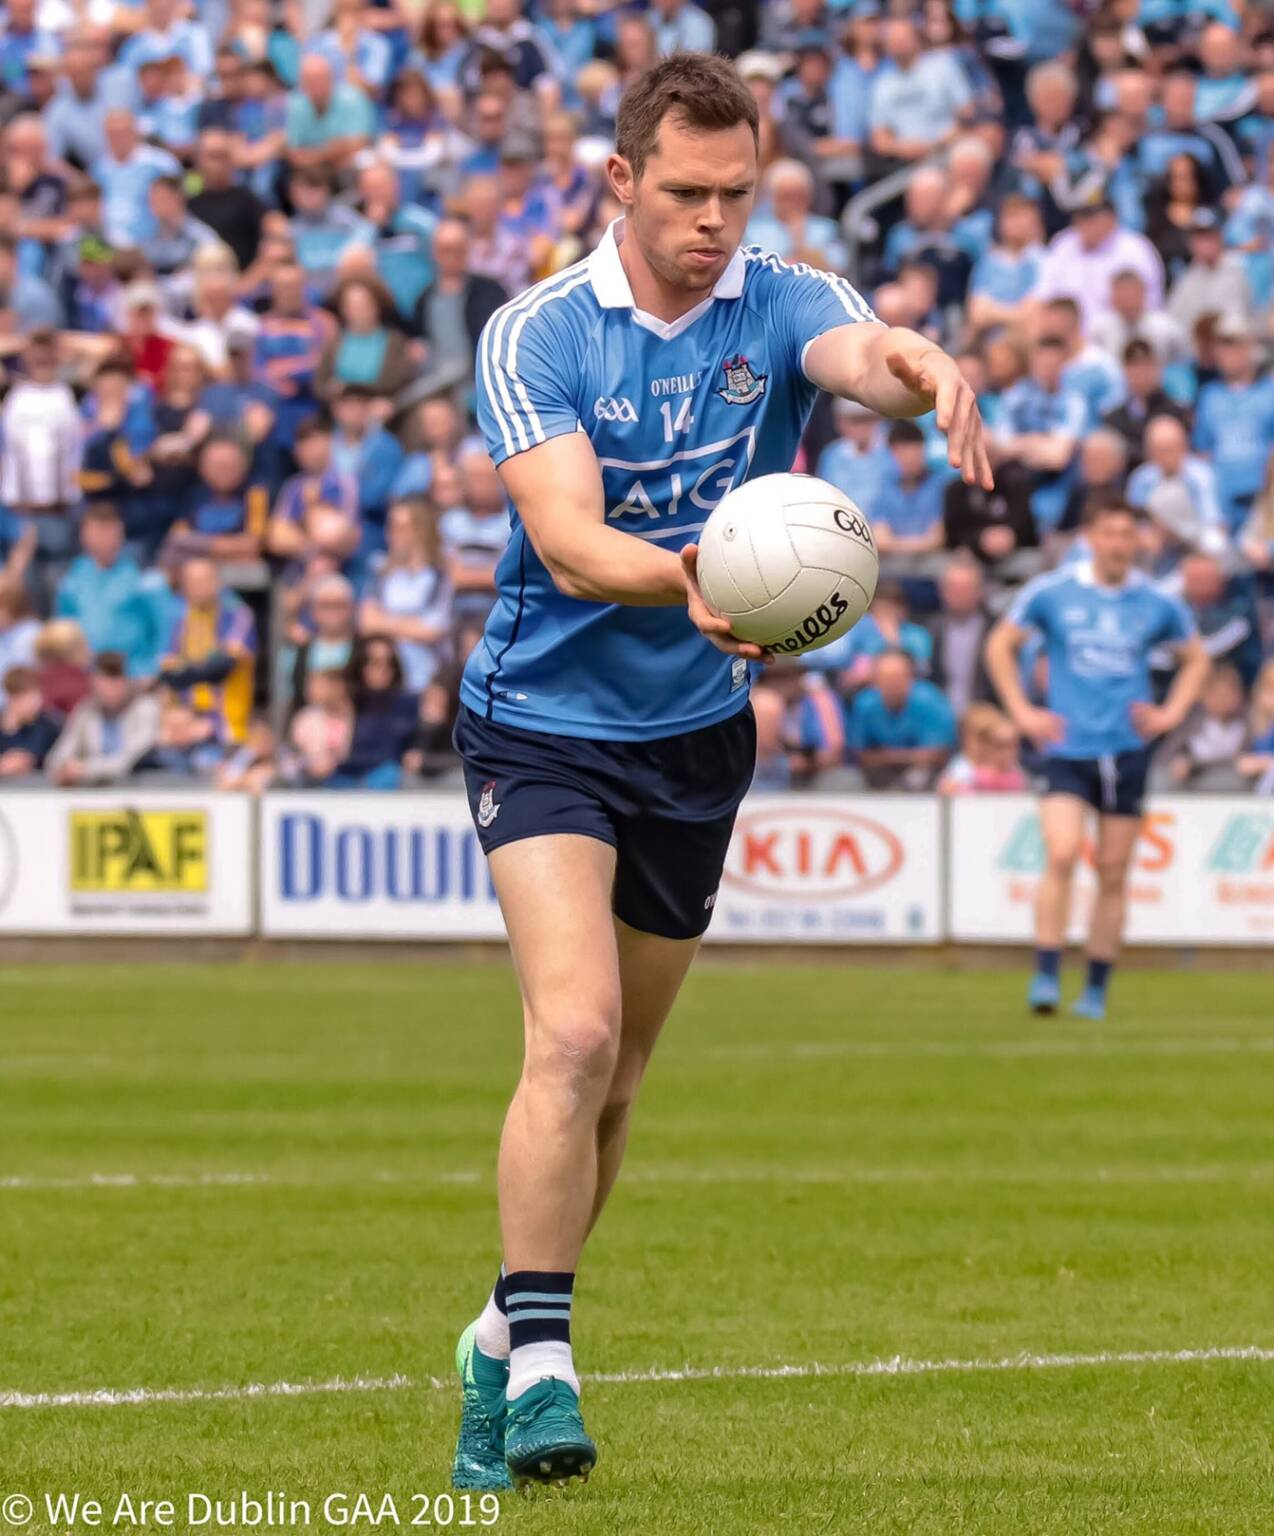 Dublin's Dean Rock who put in a player of the match performance finishing with 1-07to his name as Dublin claimed their 10th Leinster Championship title in a row.